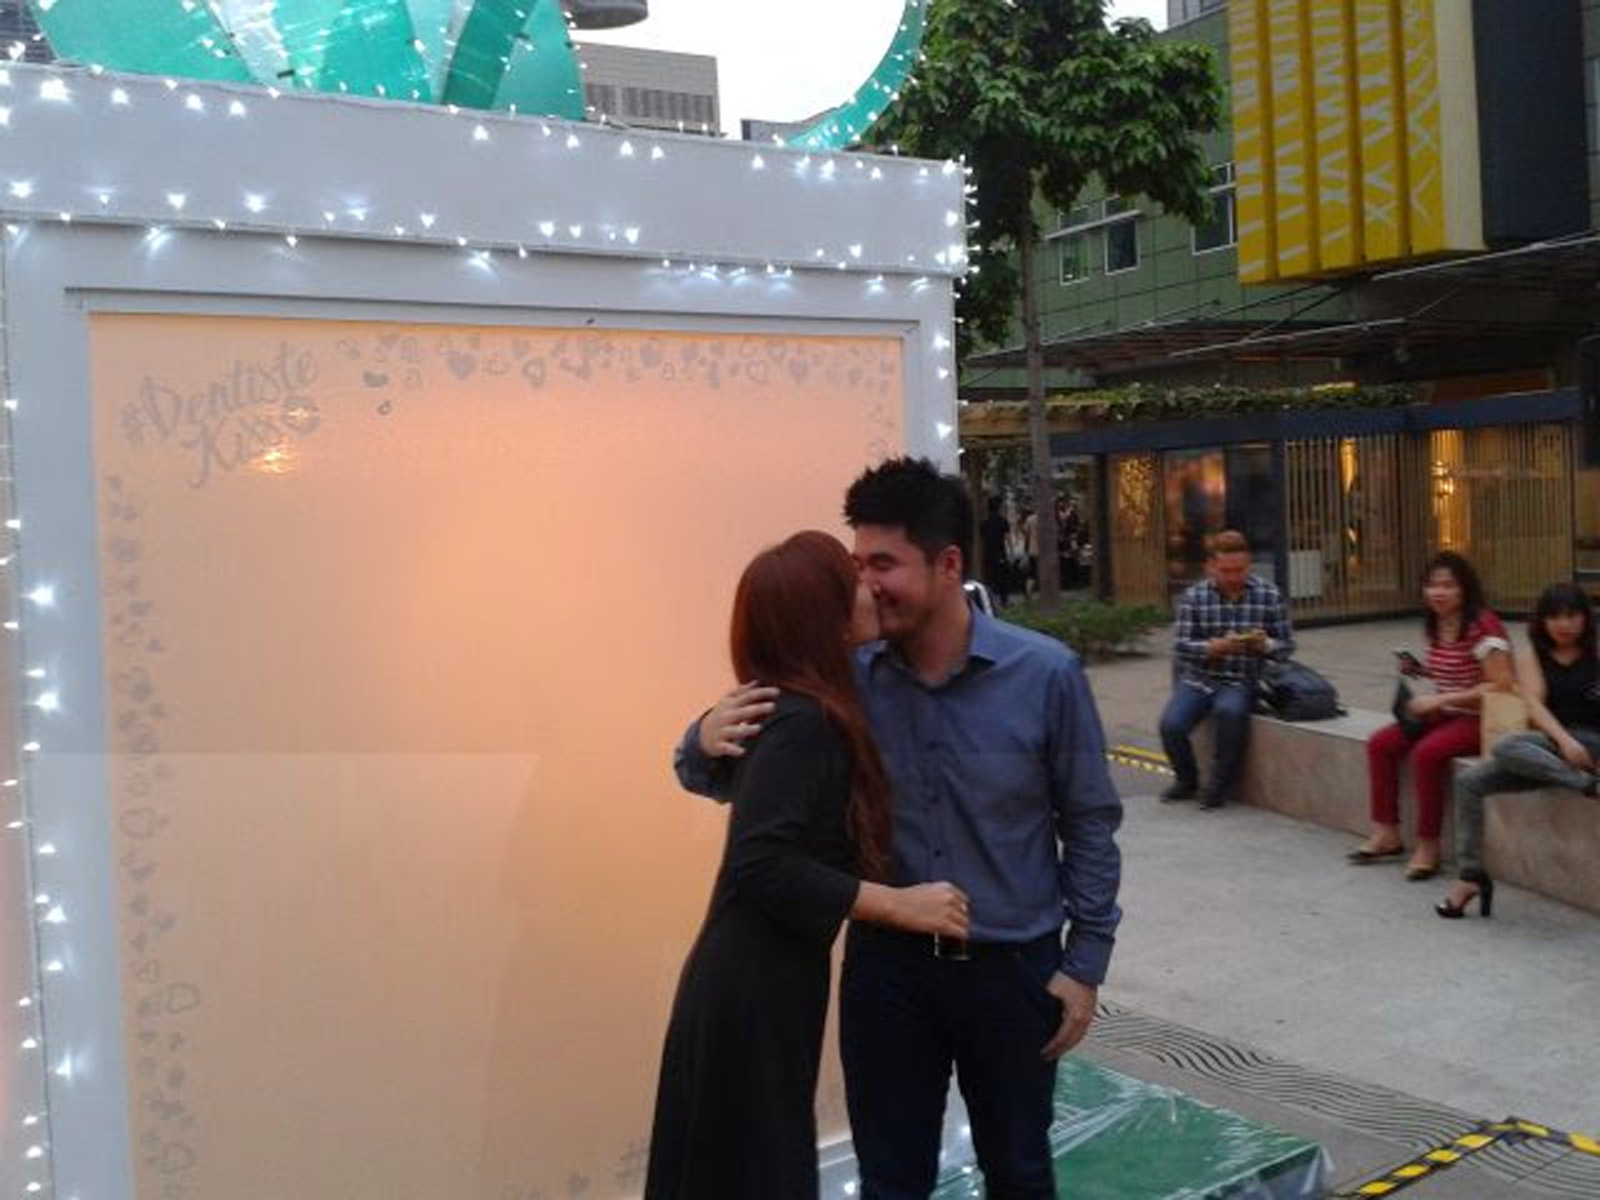 Kissing at Mystery Box